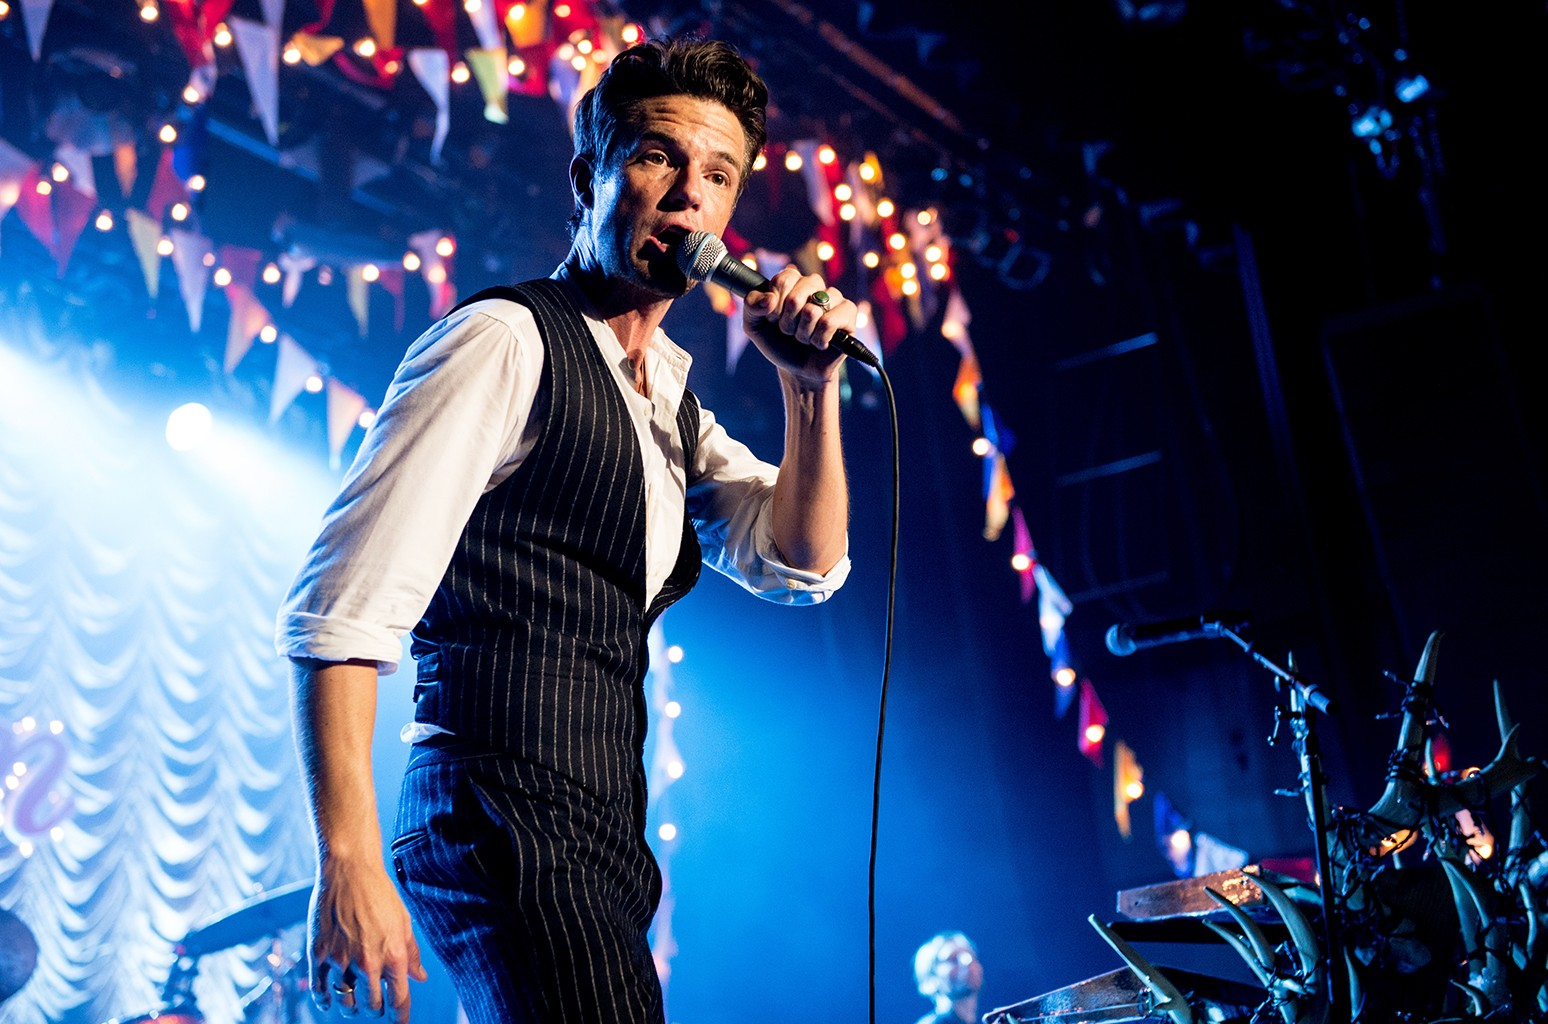 Brandon Flowers of The Killers performs at Sam's Town Hotel & Gambling Hall on Oct. 1, 2016 in Las Vegas.